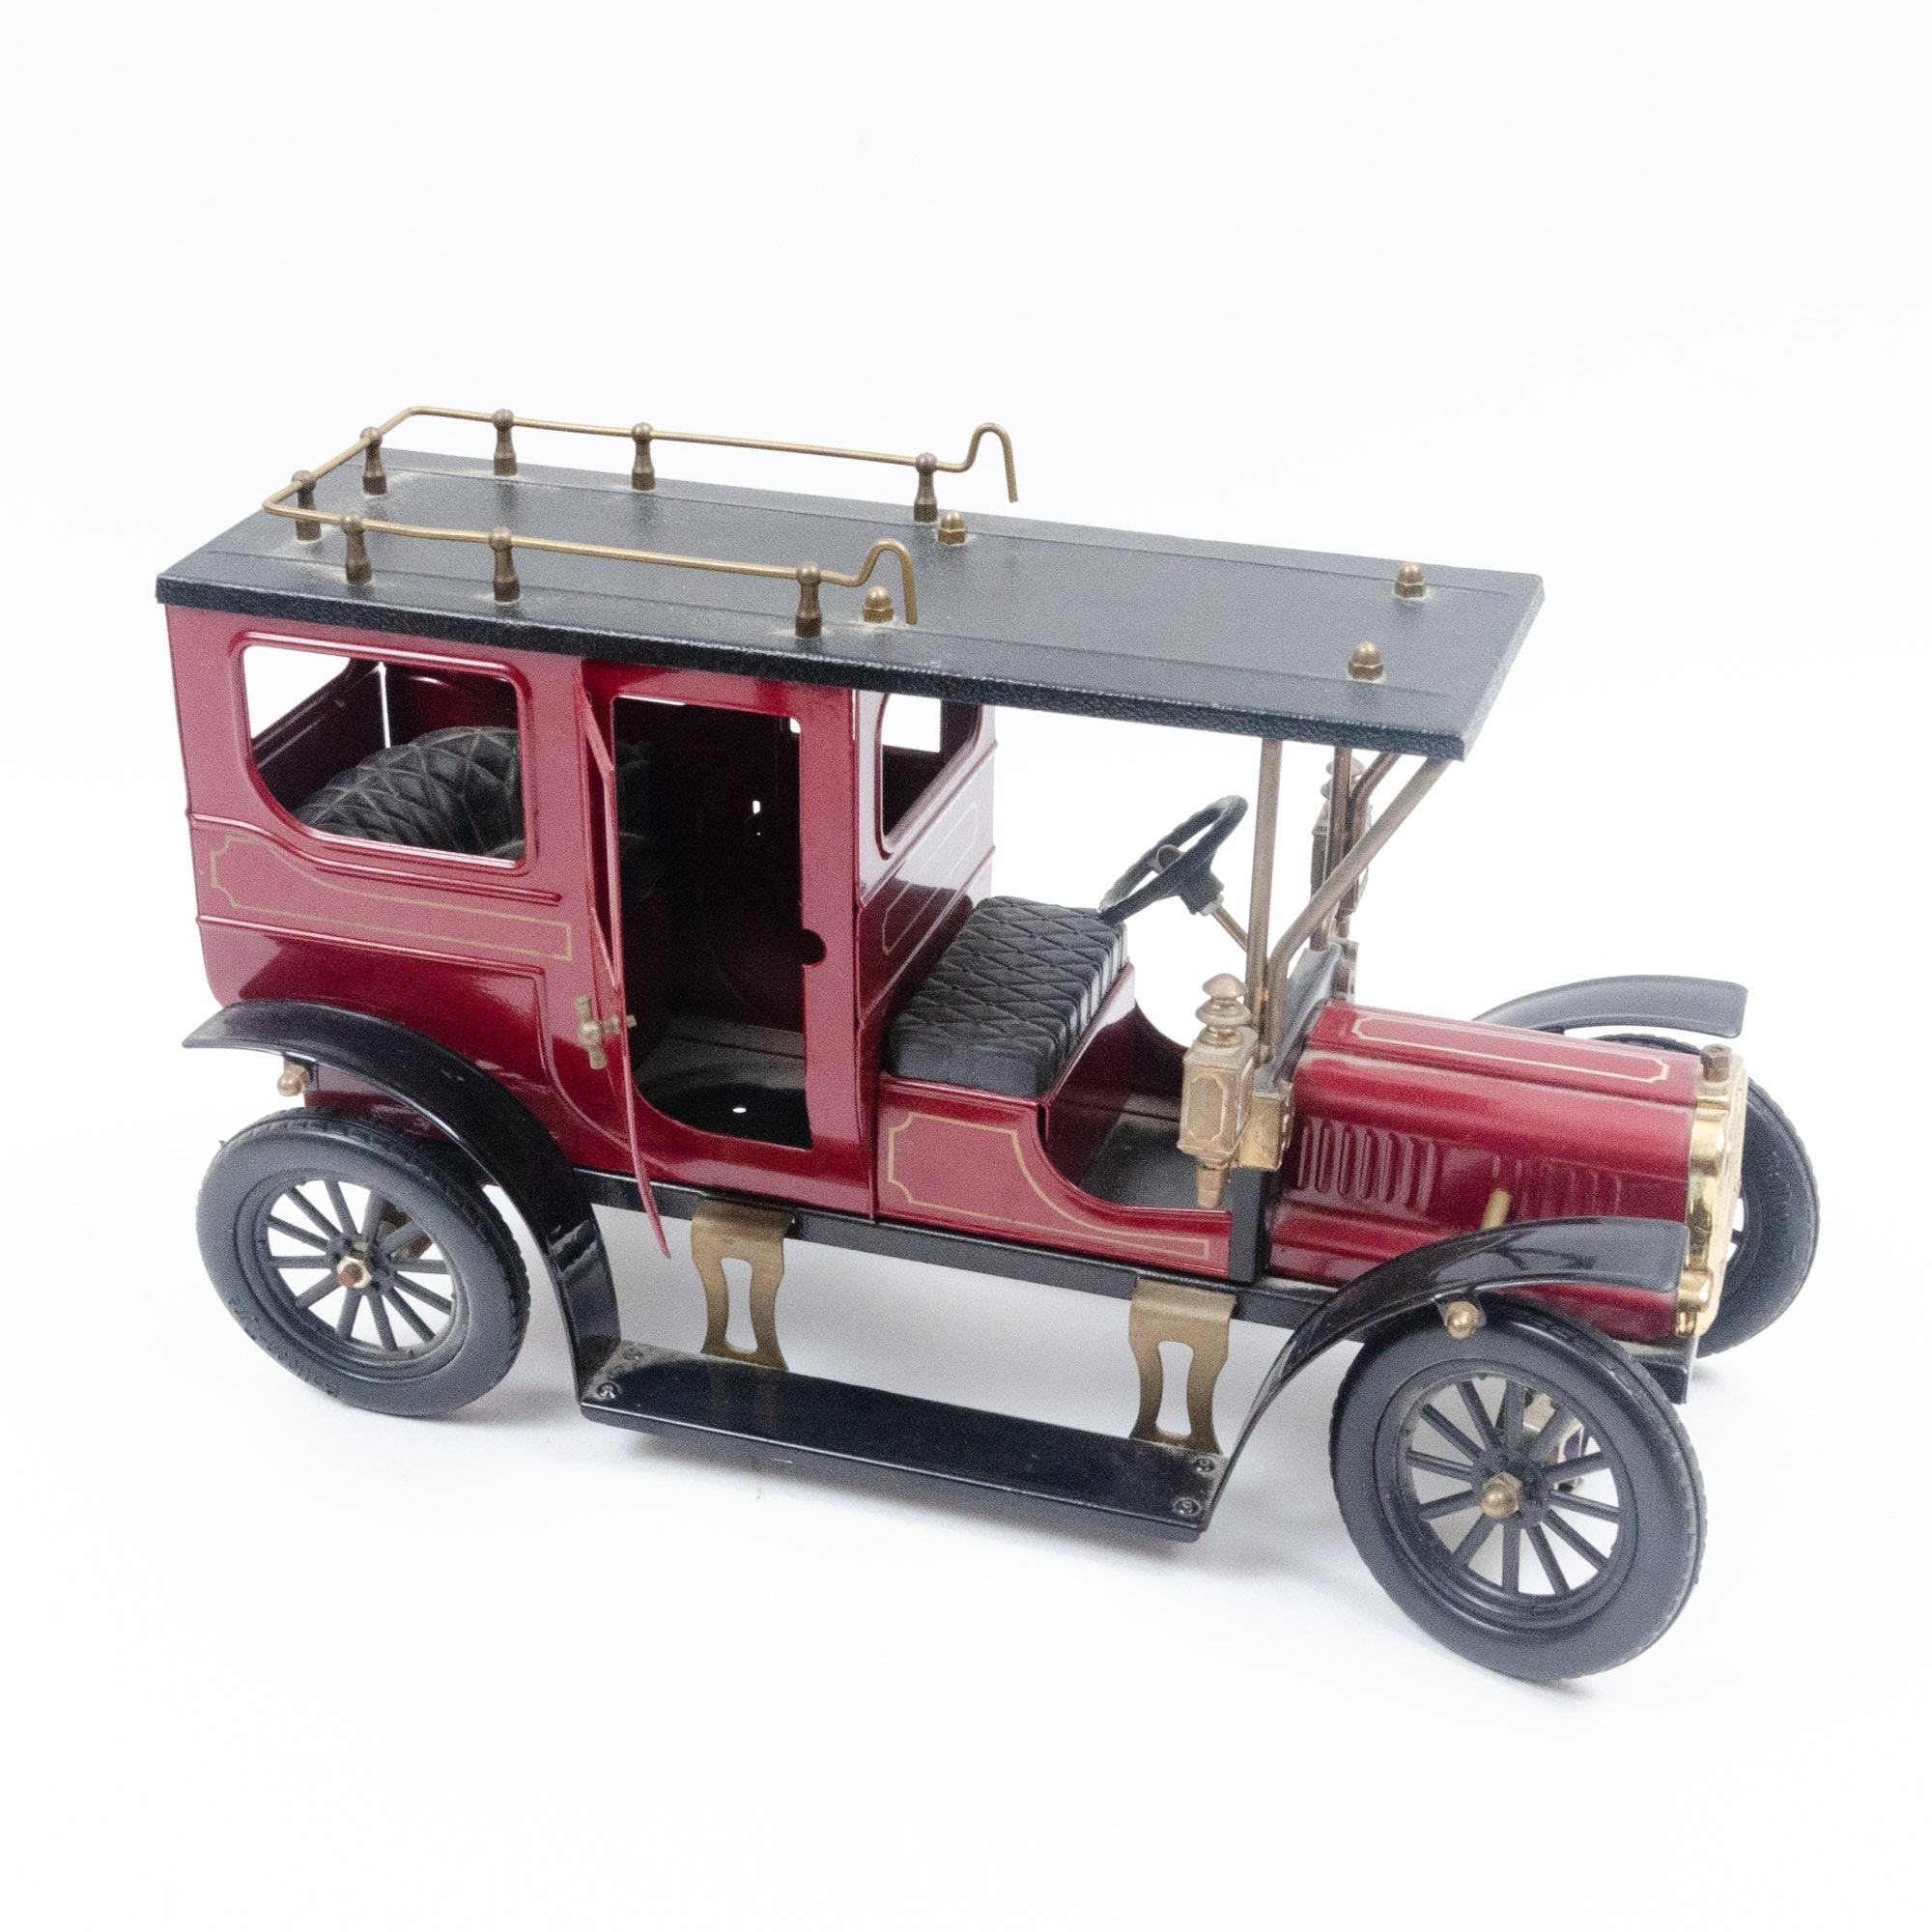 JB Die Cast Model Limousine